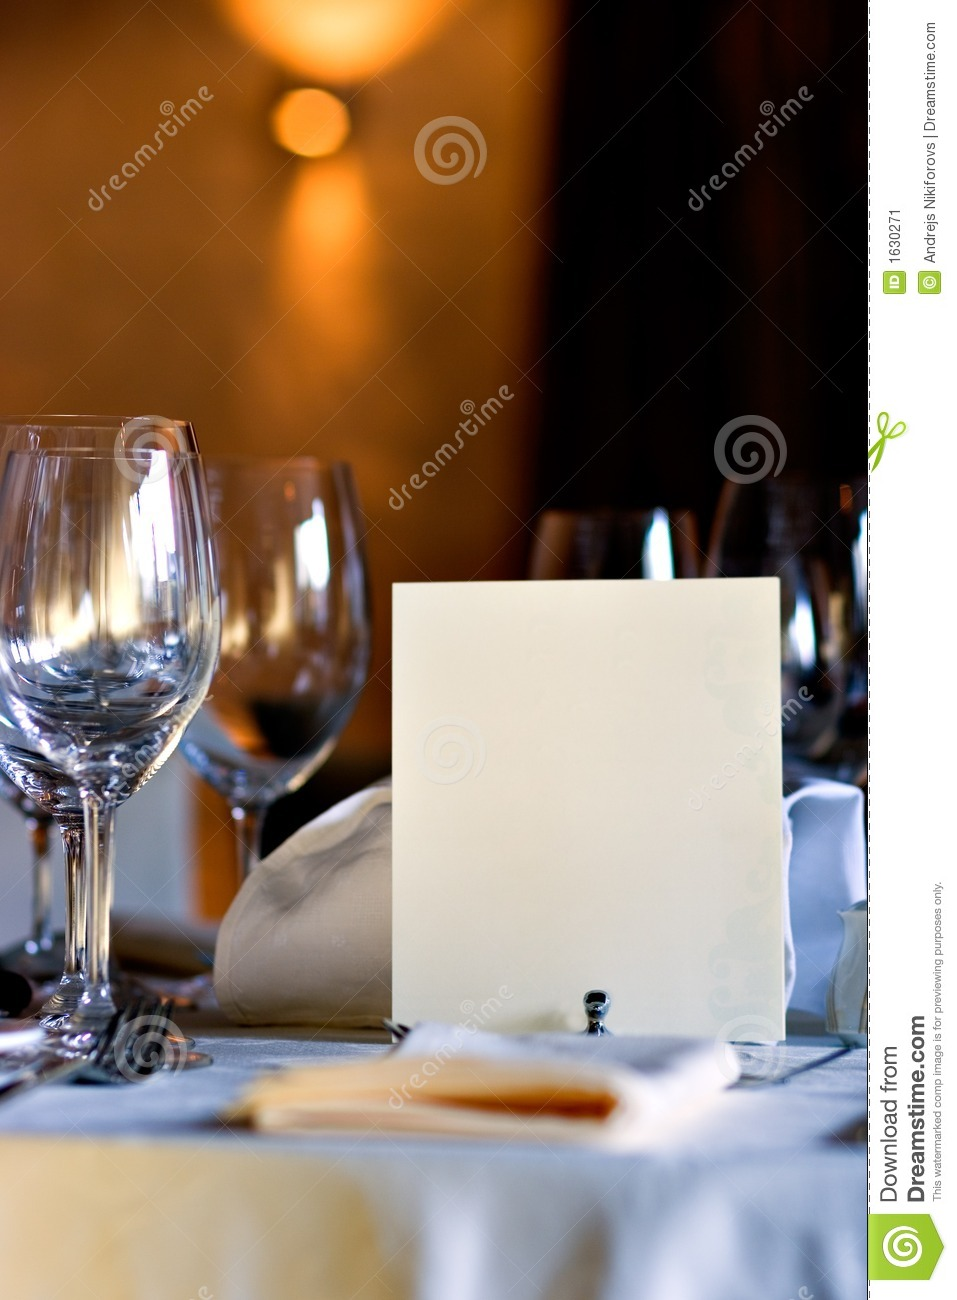 Blank menu on restaurant table stock image image 1630271 for Table table restaurant menu